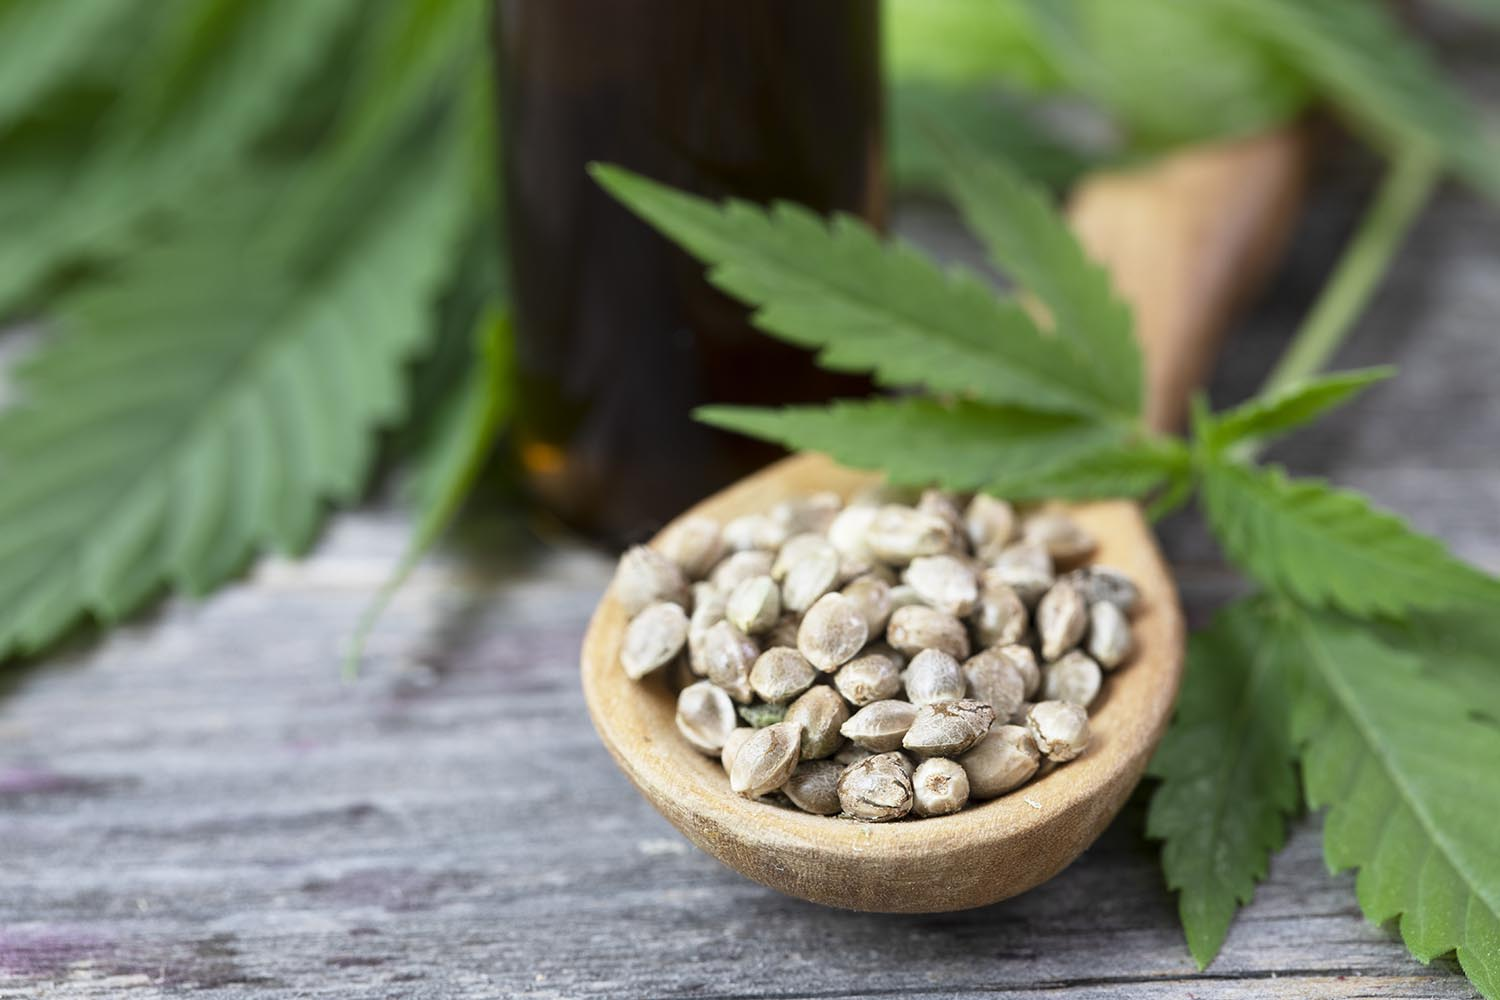 cannabis-seeds-in-spoon